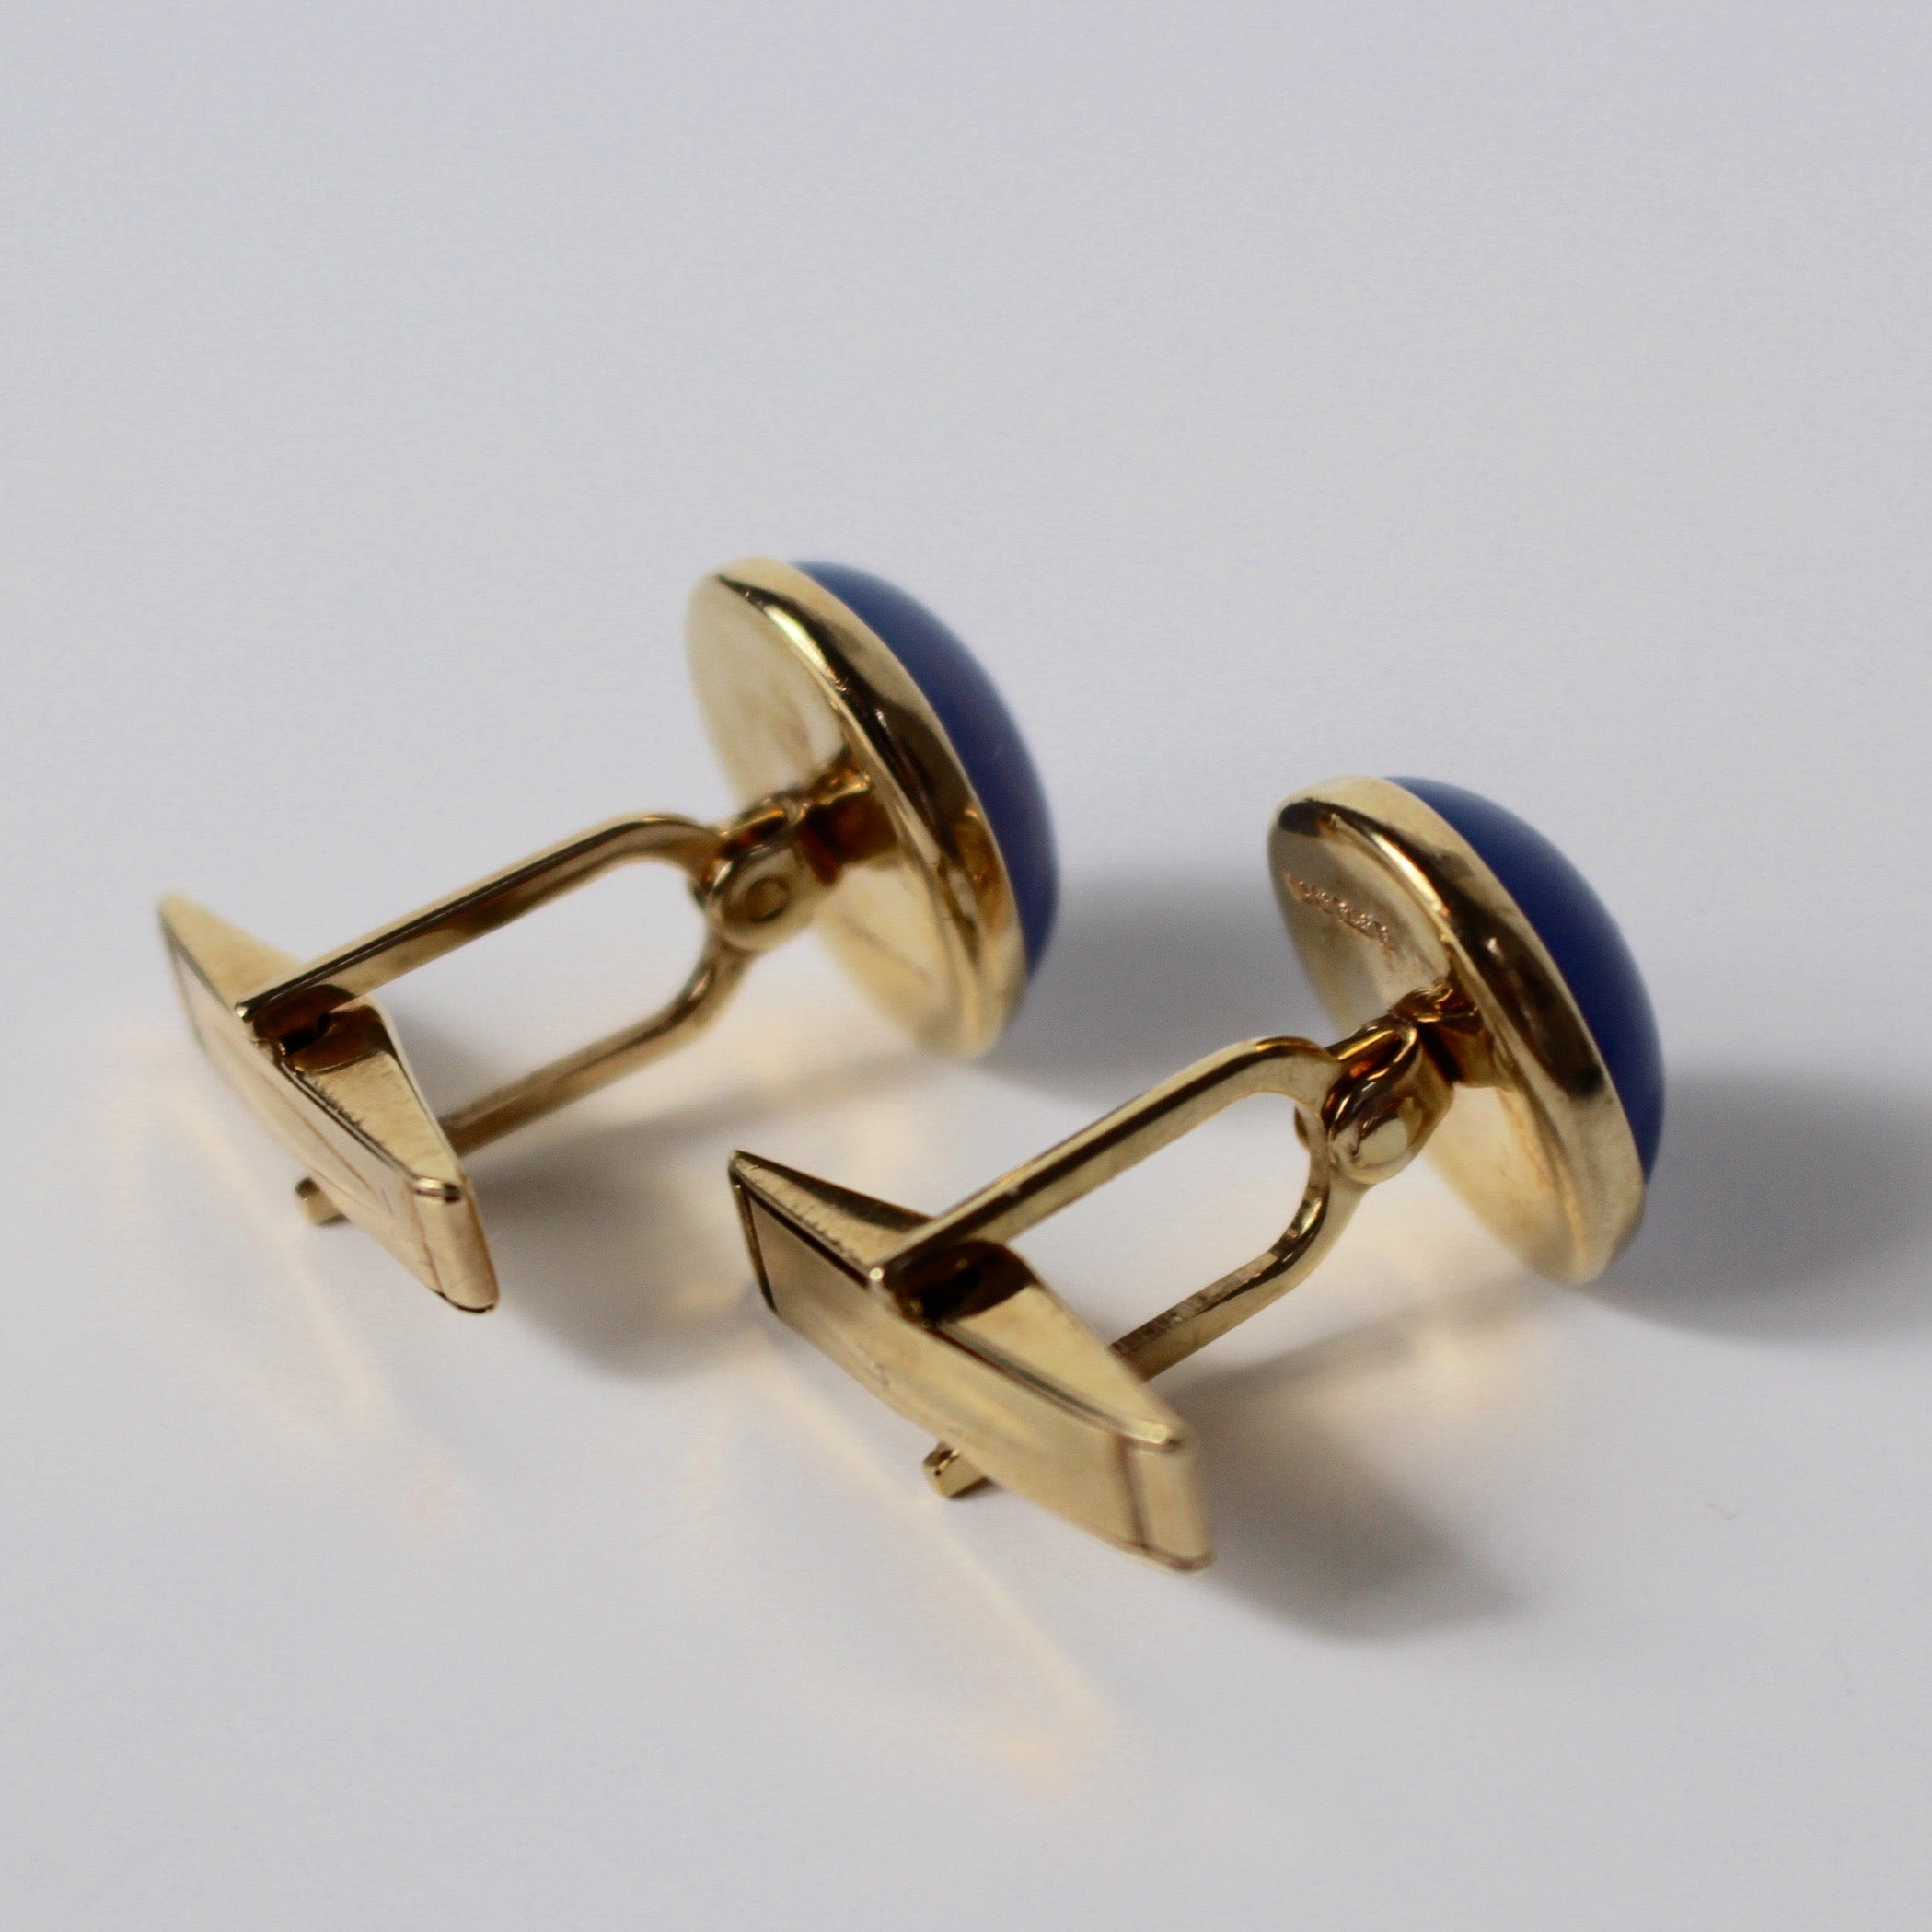 Cufflinks with Cabochon Chalcedony Stones (1995)